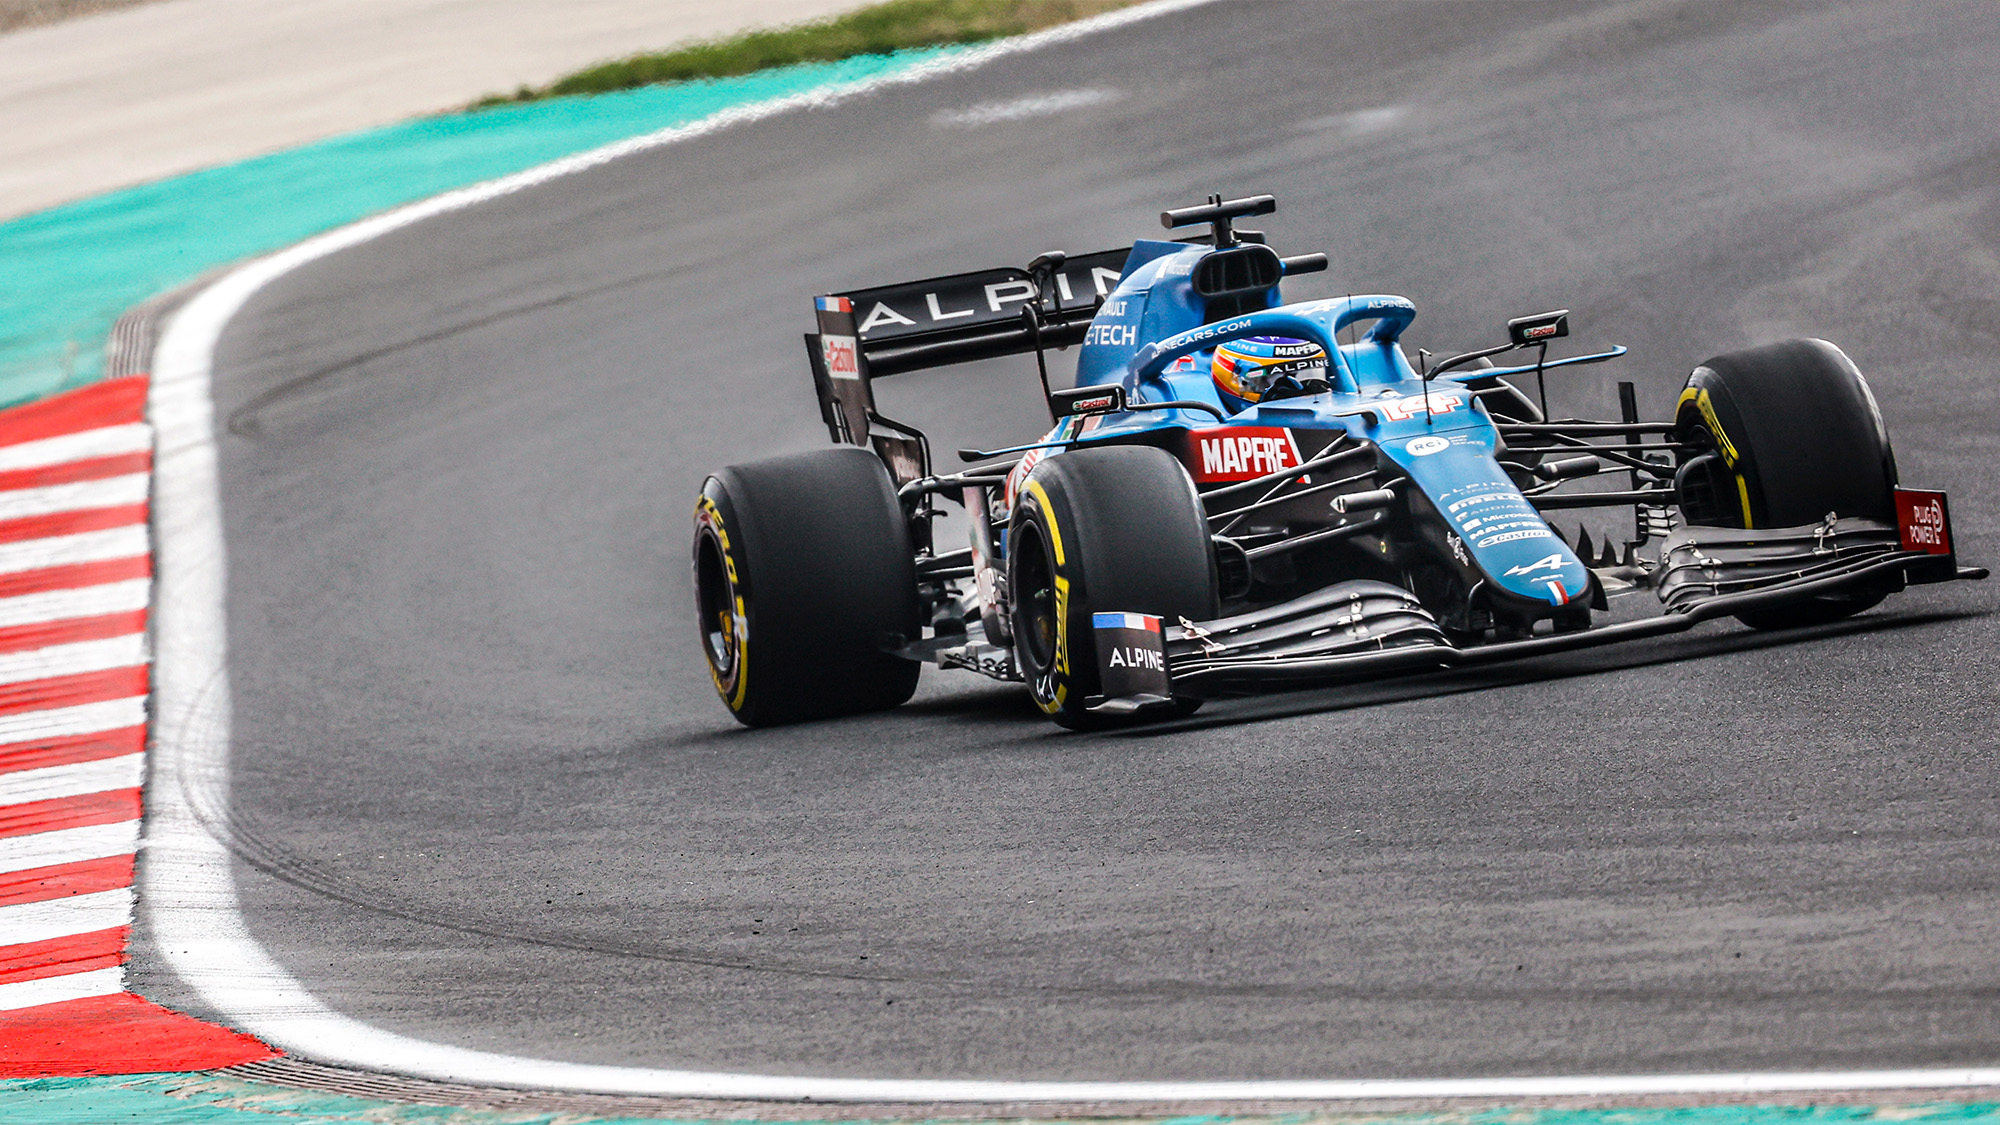 Fernando Alonso qualifying for the 2021 Turkish Grand Prix